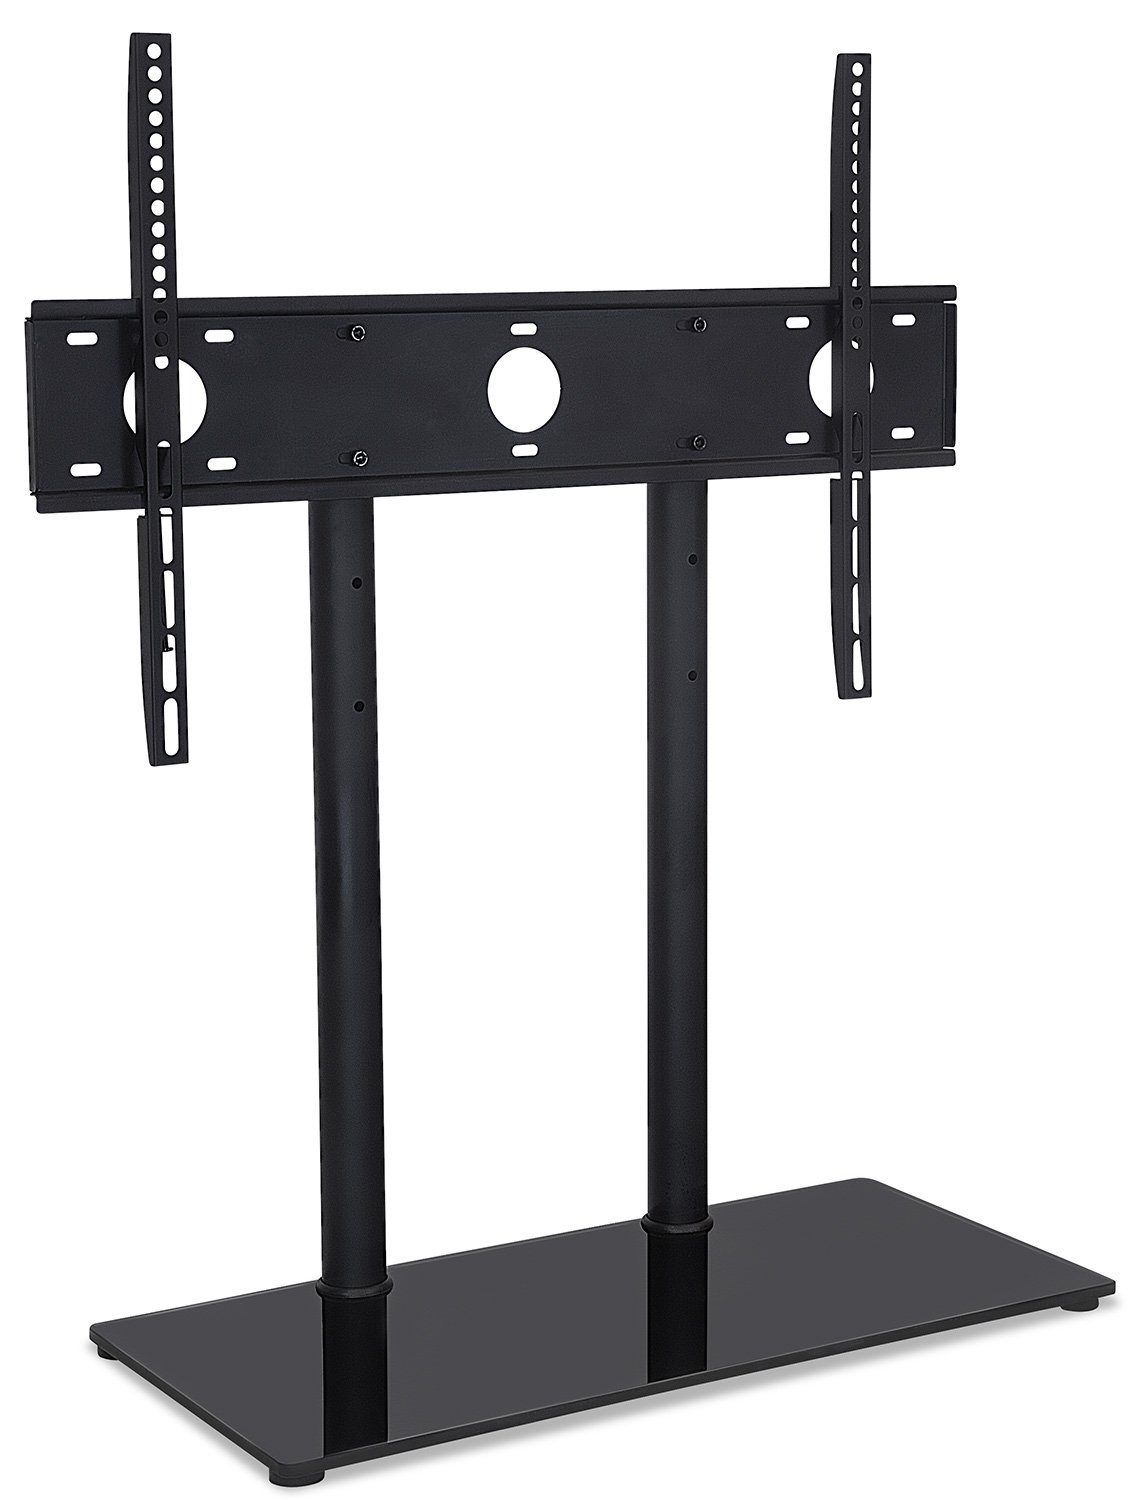 Mount-It! Articulating TV Wall Mount Corner Bracket, VESA 400 x 400 Compatible, Stable Dual Arm Full Motion, Swivel, Tilt Fits 32, 37, 40, 42, 47, 50 Inch TVs, 115 Lbs Capacity With HDMI Cable, Black MI-4461 cable